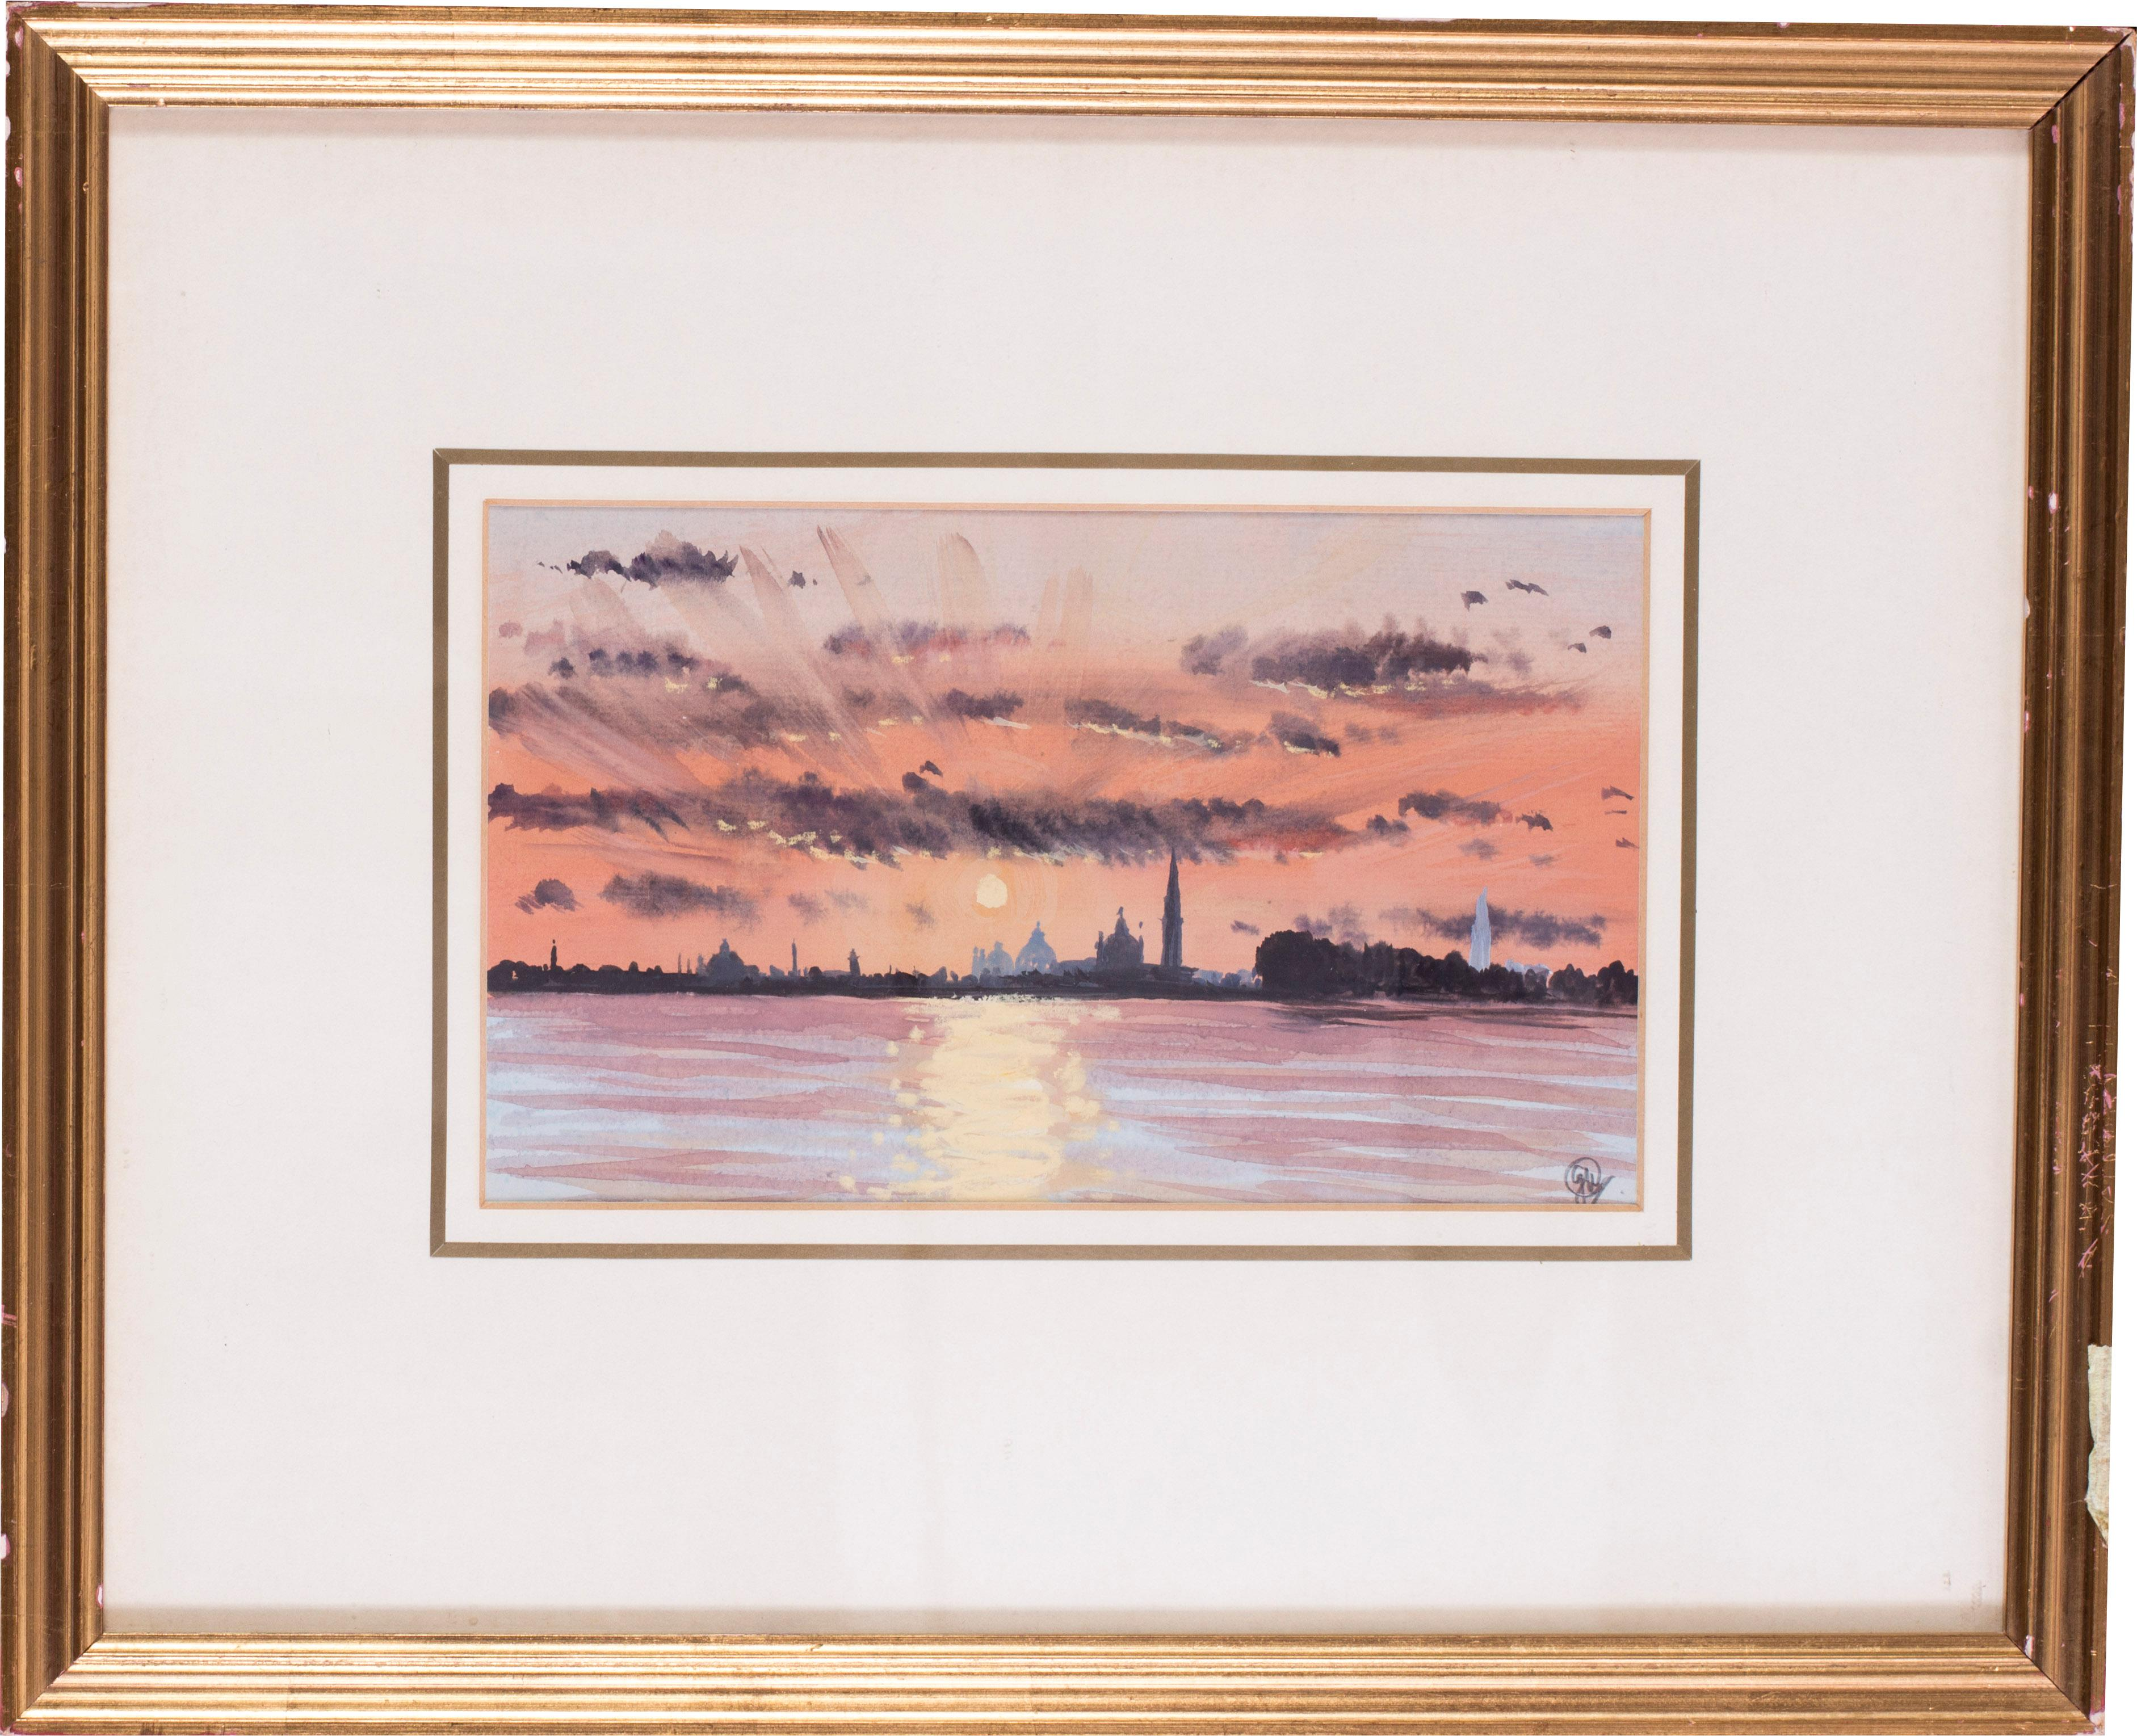 Venice sunset from the Lido, watercolour by British artist John Doyle